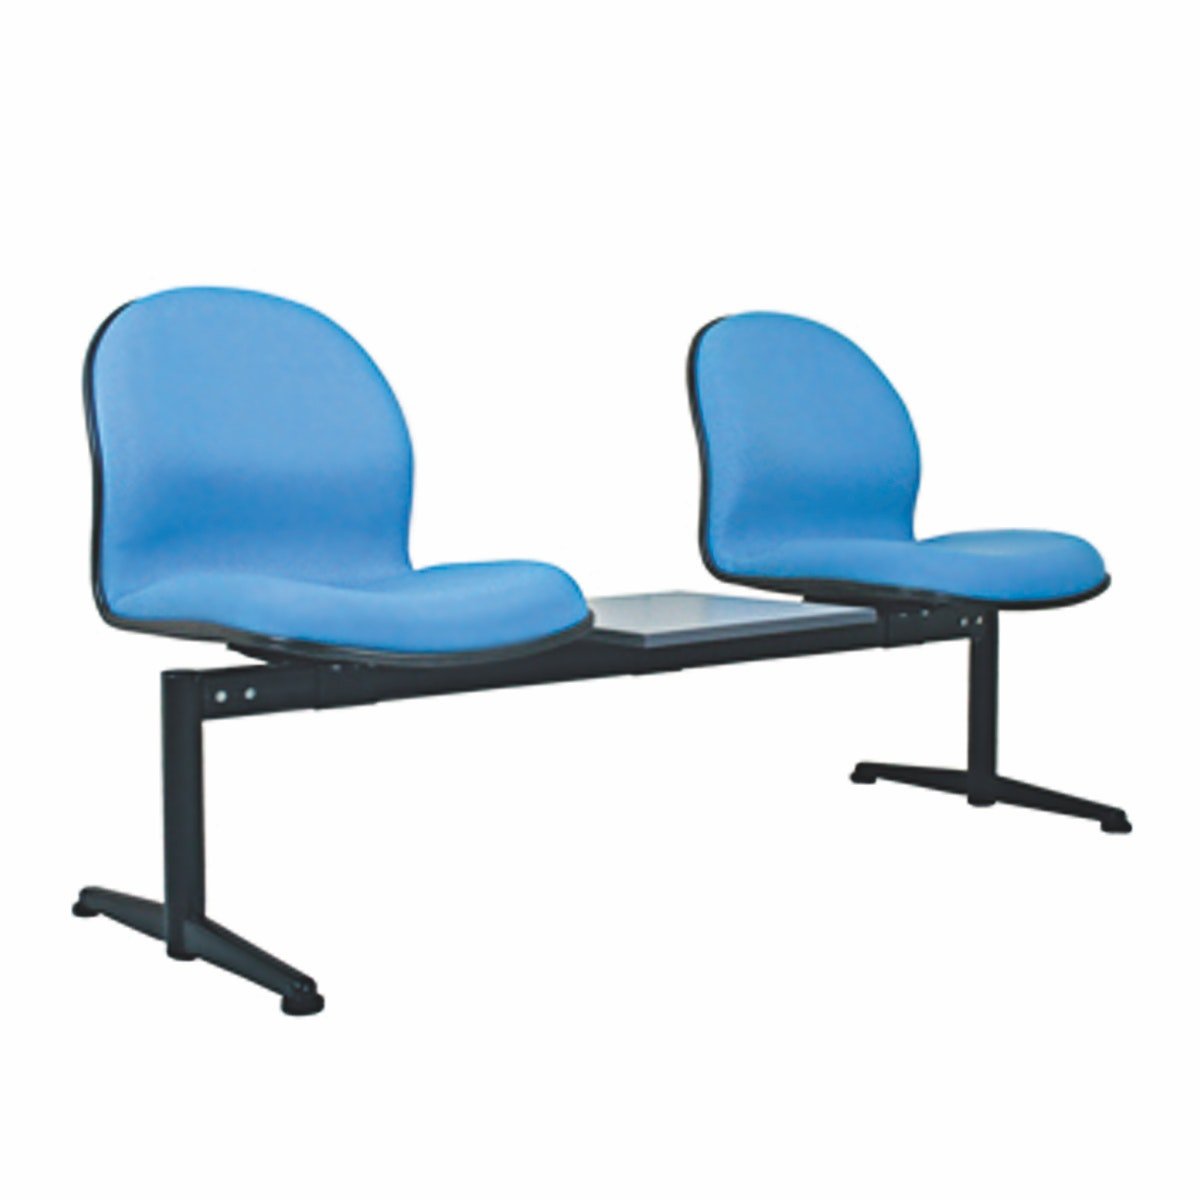 Chairman Stark Visitor Chair With Table VC421 Biru